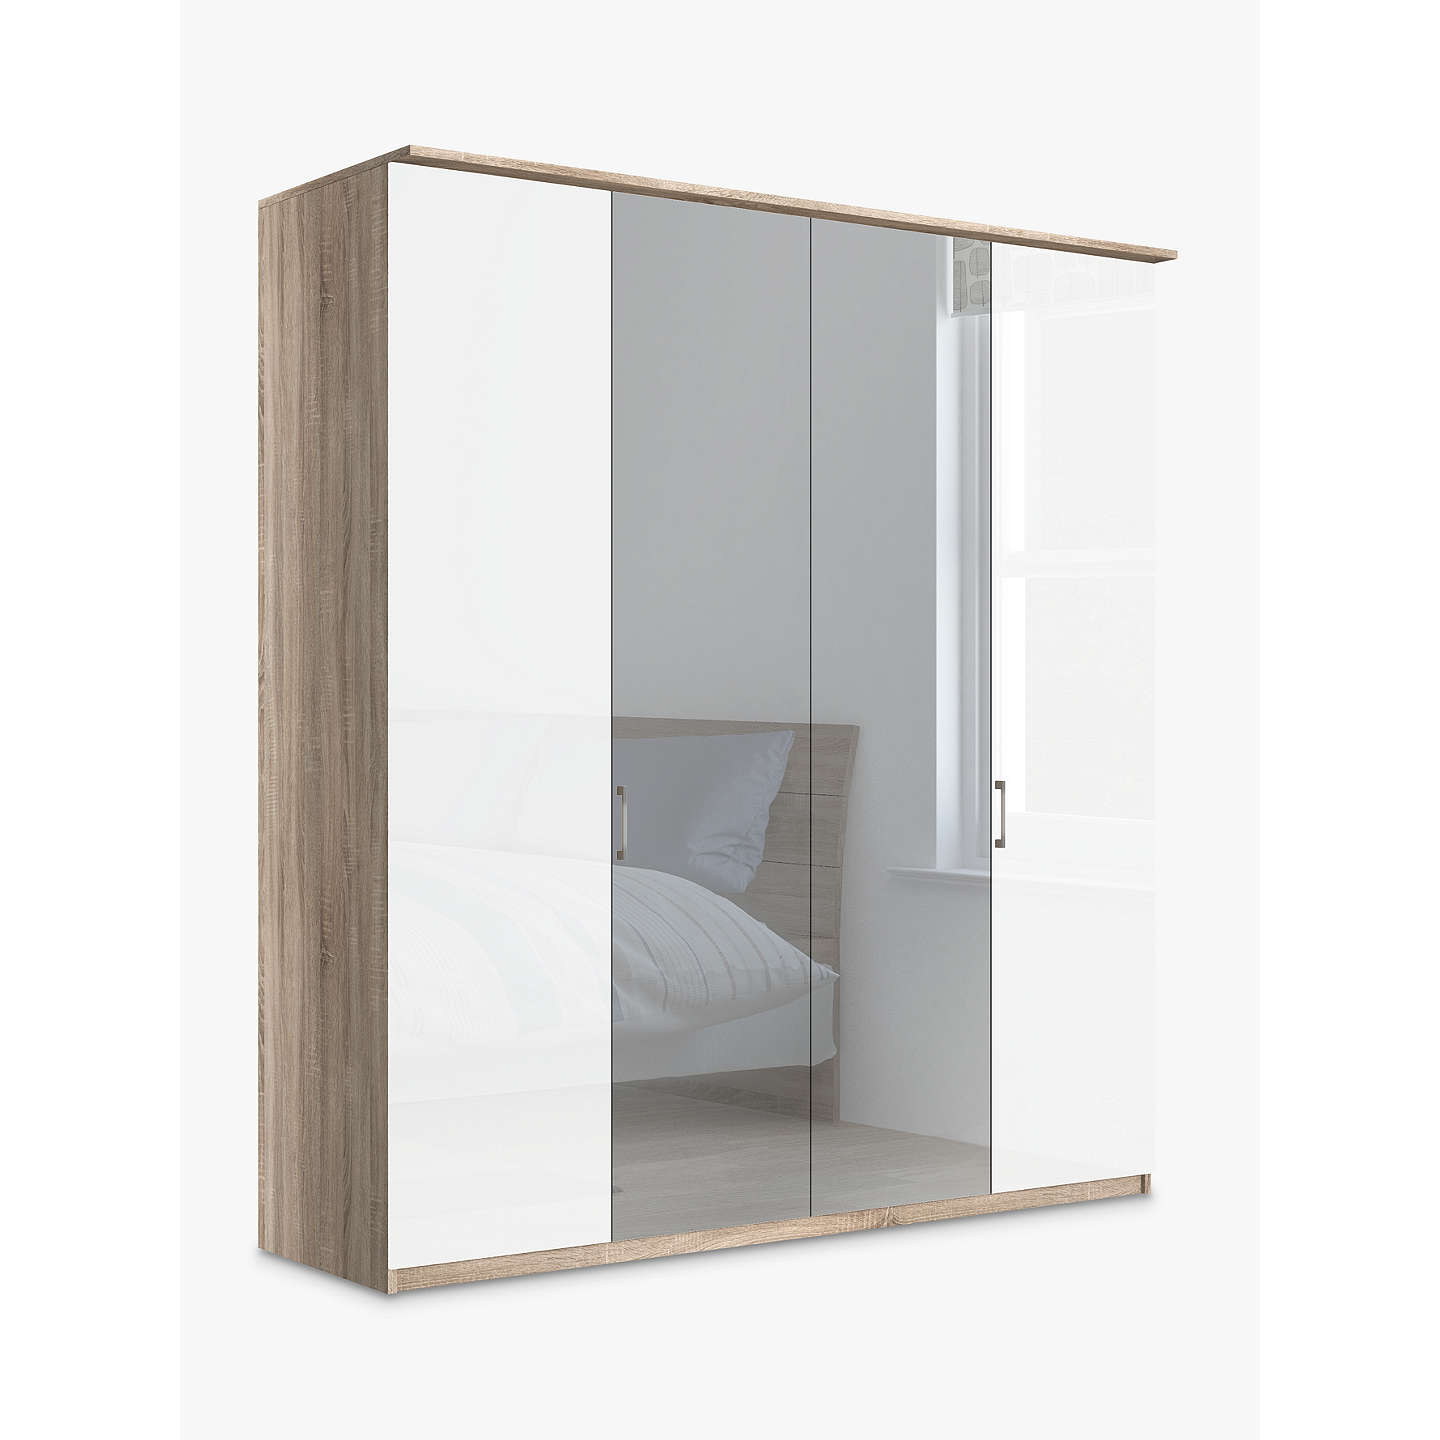 john lewis elstra 200cm wardrobe with glass and mirrored. Black Bedroom Furniture Sets. Home Design Ideas